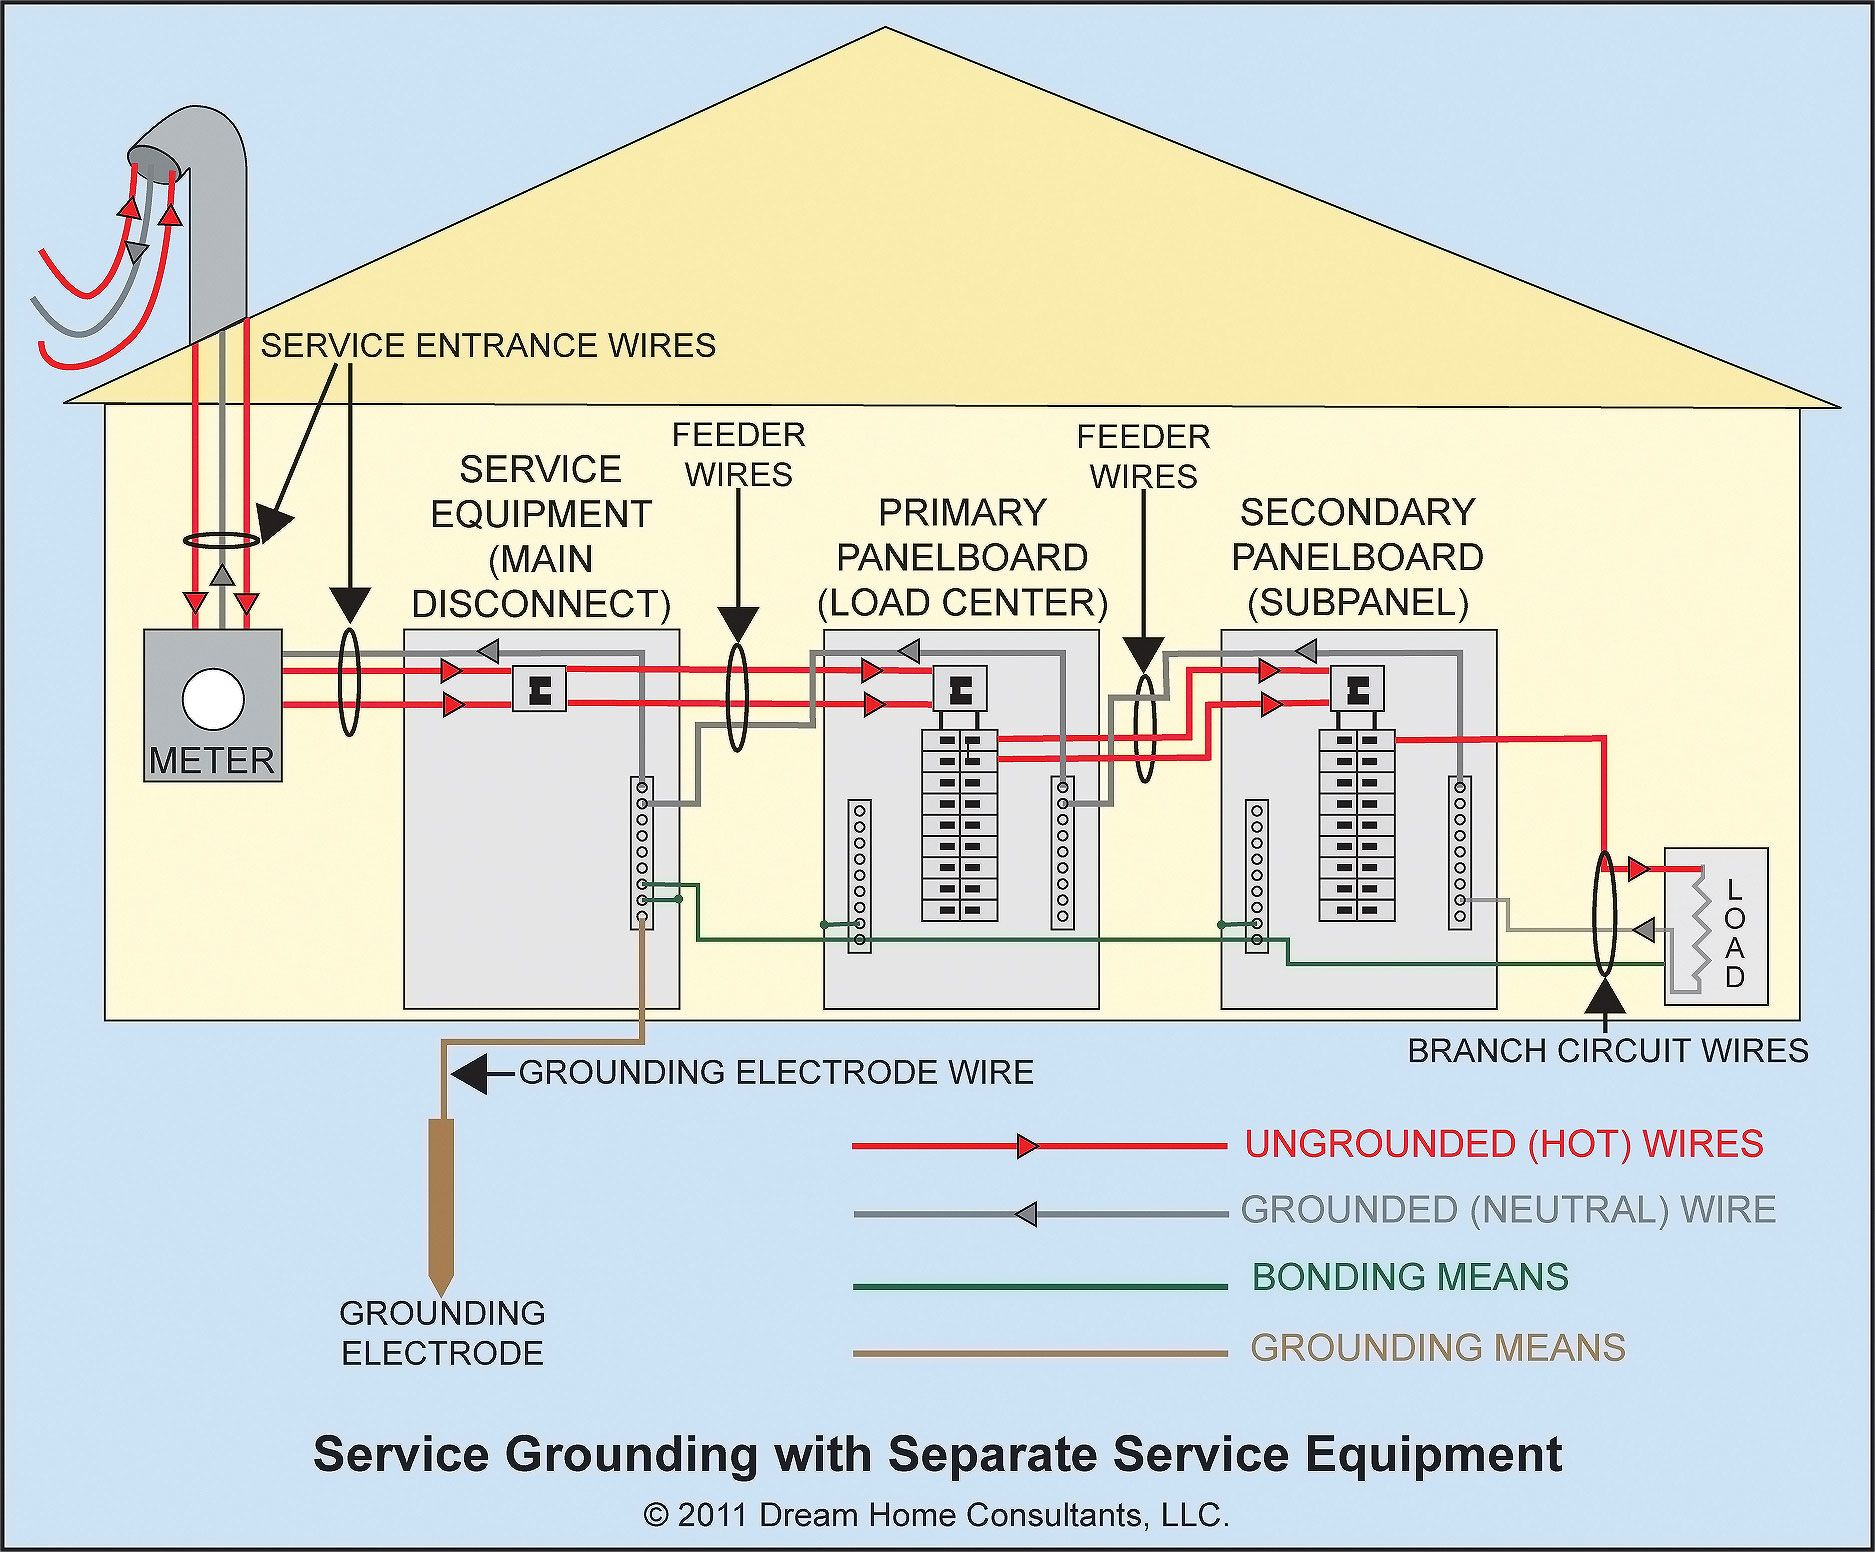 Service Grounding General Requirements Electrical Wiring